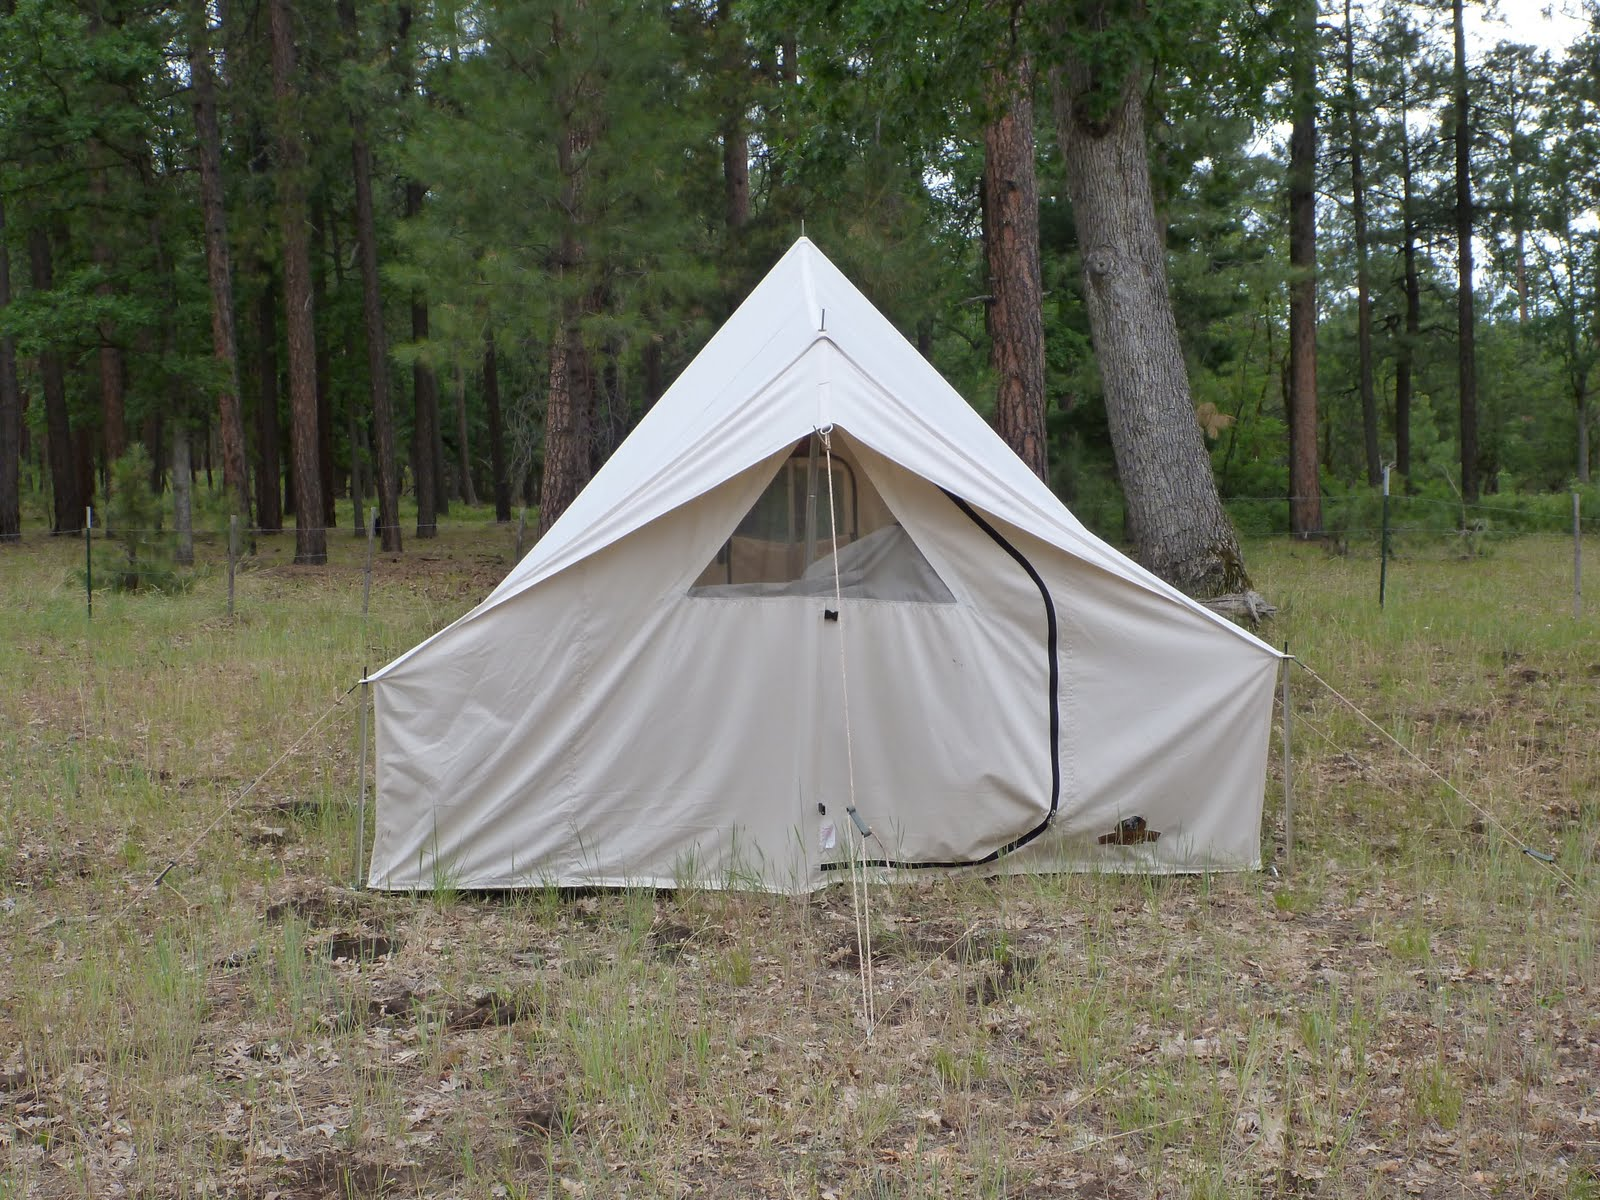 ... or two cots and the stove by placing a cot along the back wall. Iu0027m also including a couple of pictures of the (messy) inside of the tent. & Reliable Tent Co. - Teton Tent